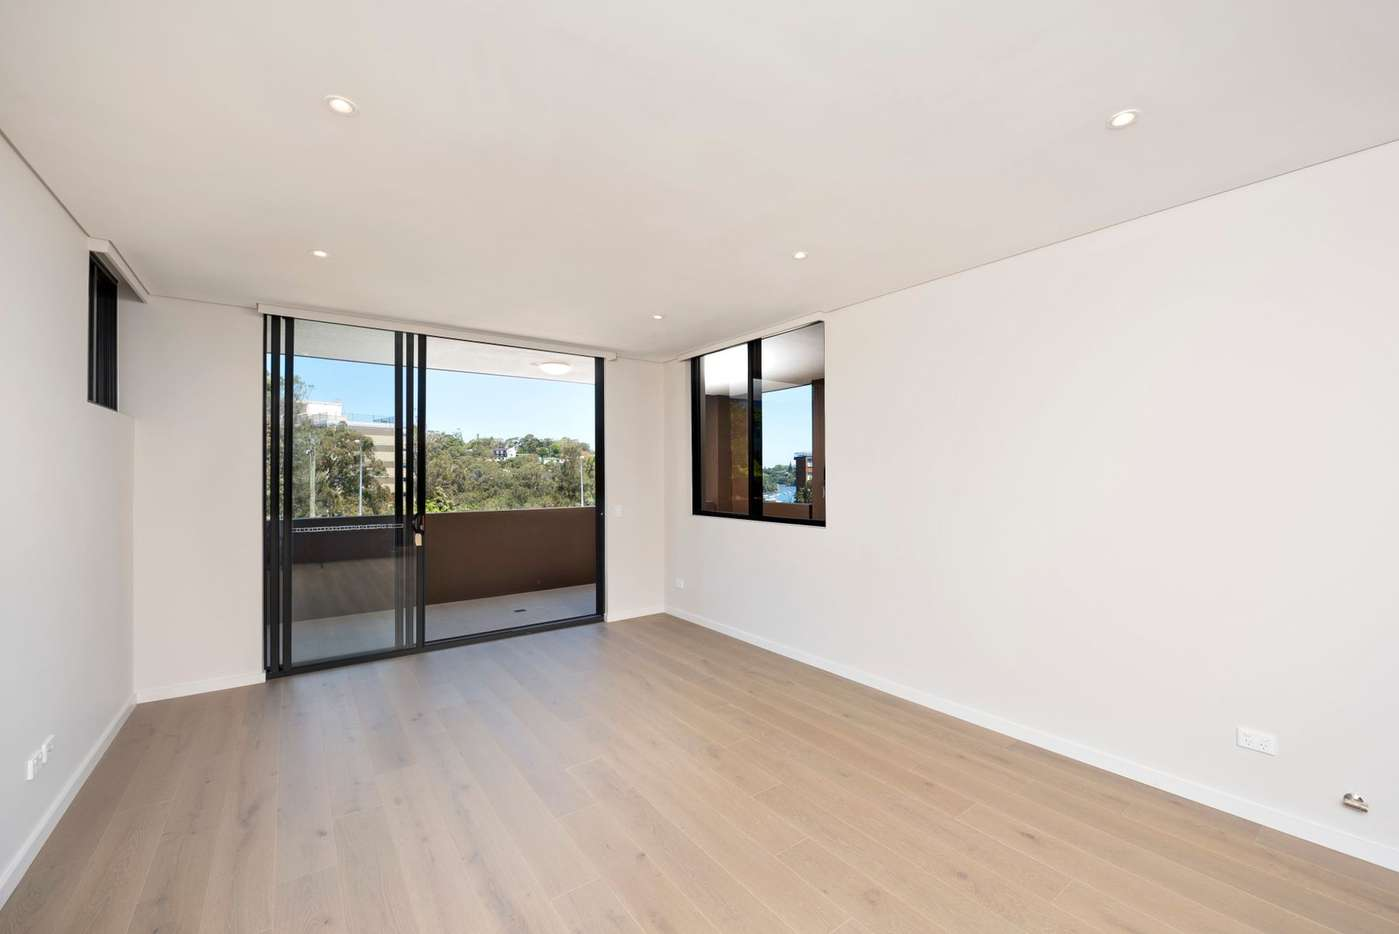 Main view of Homely apartment listing, 316/2 Waterview Drive, Lane Cove, NSW 2066